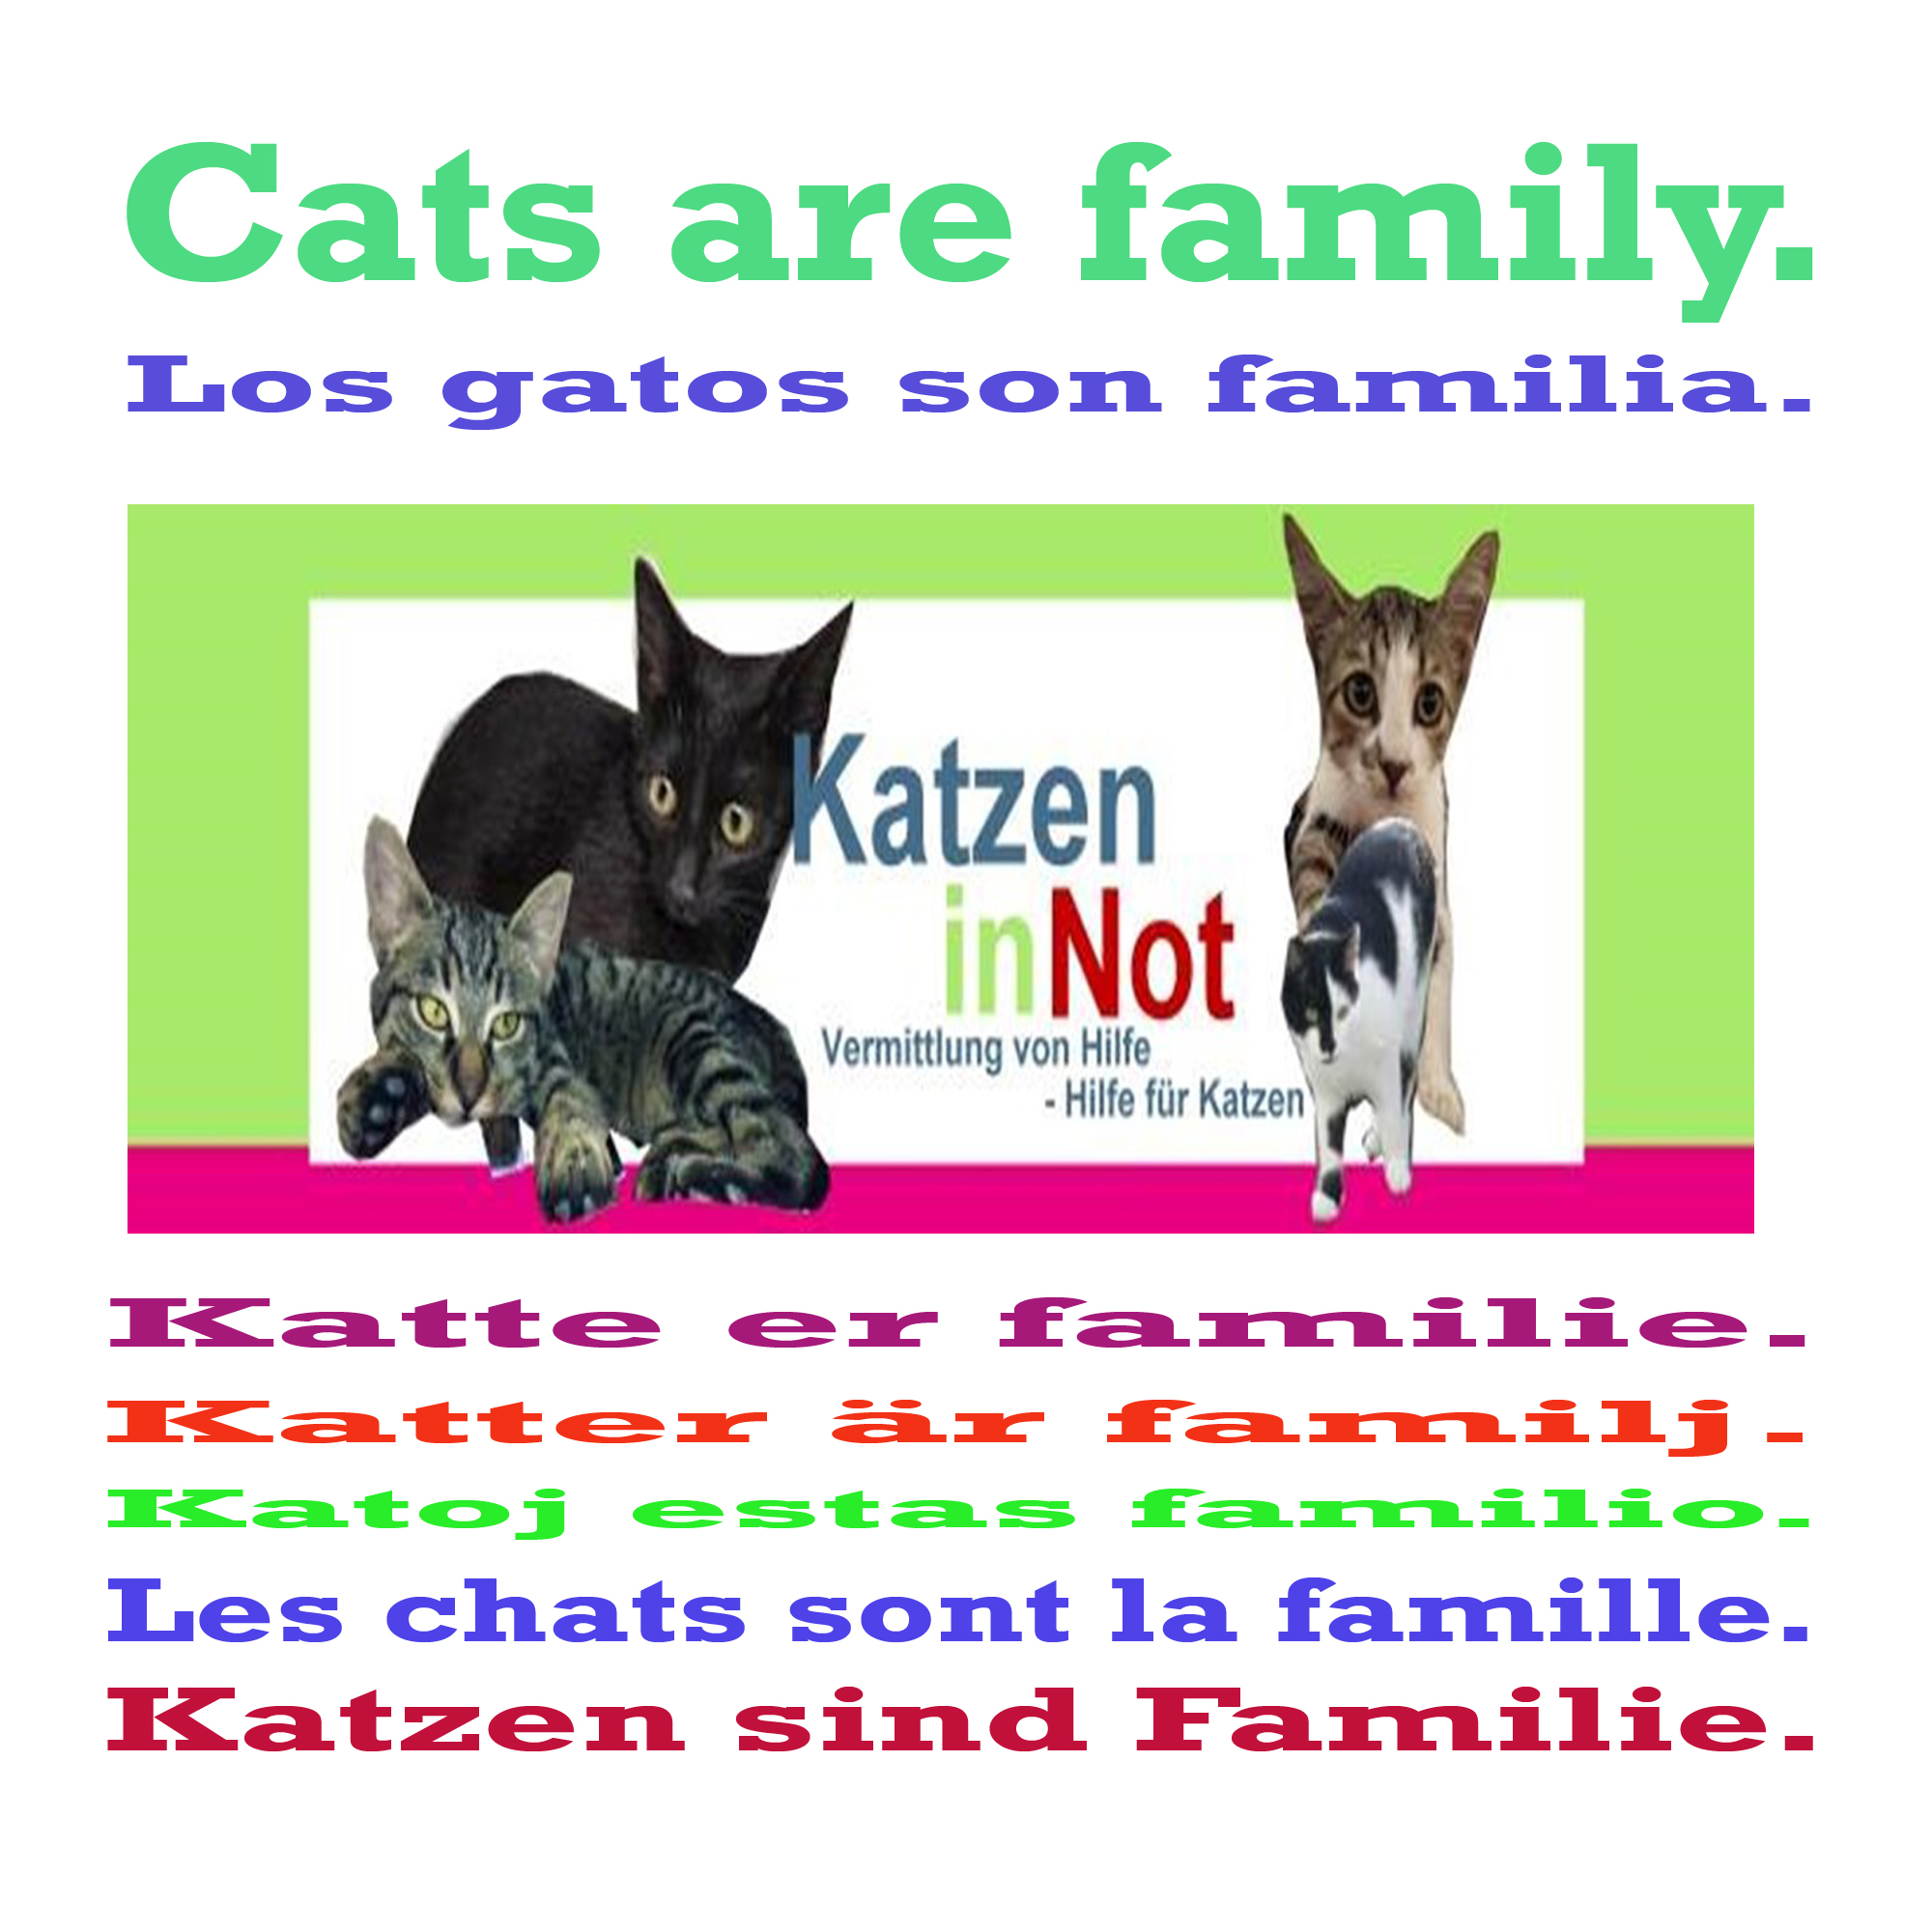 cats are family 101